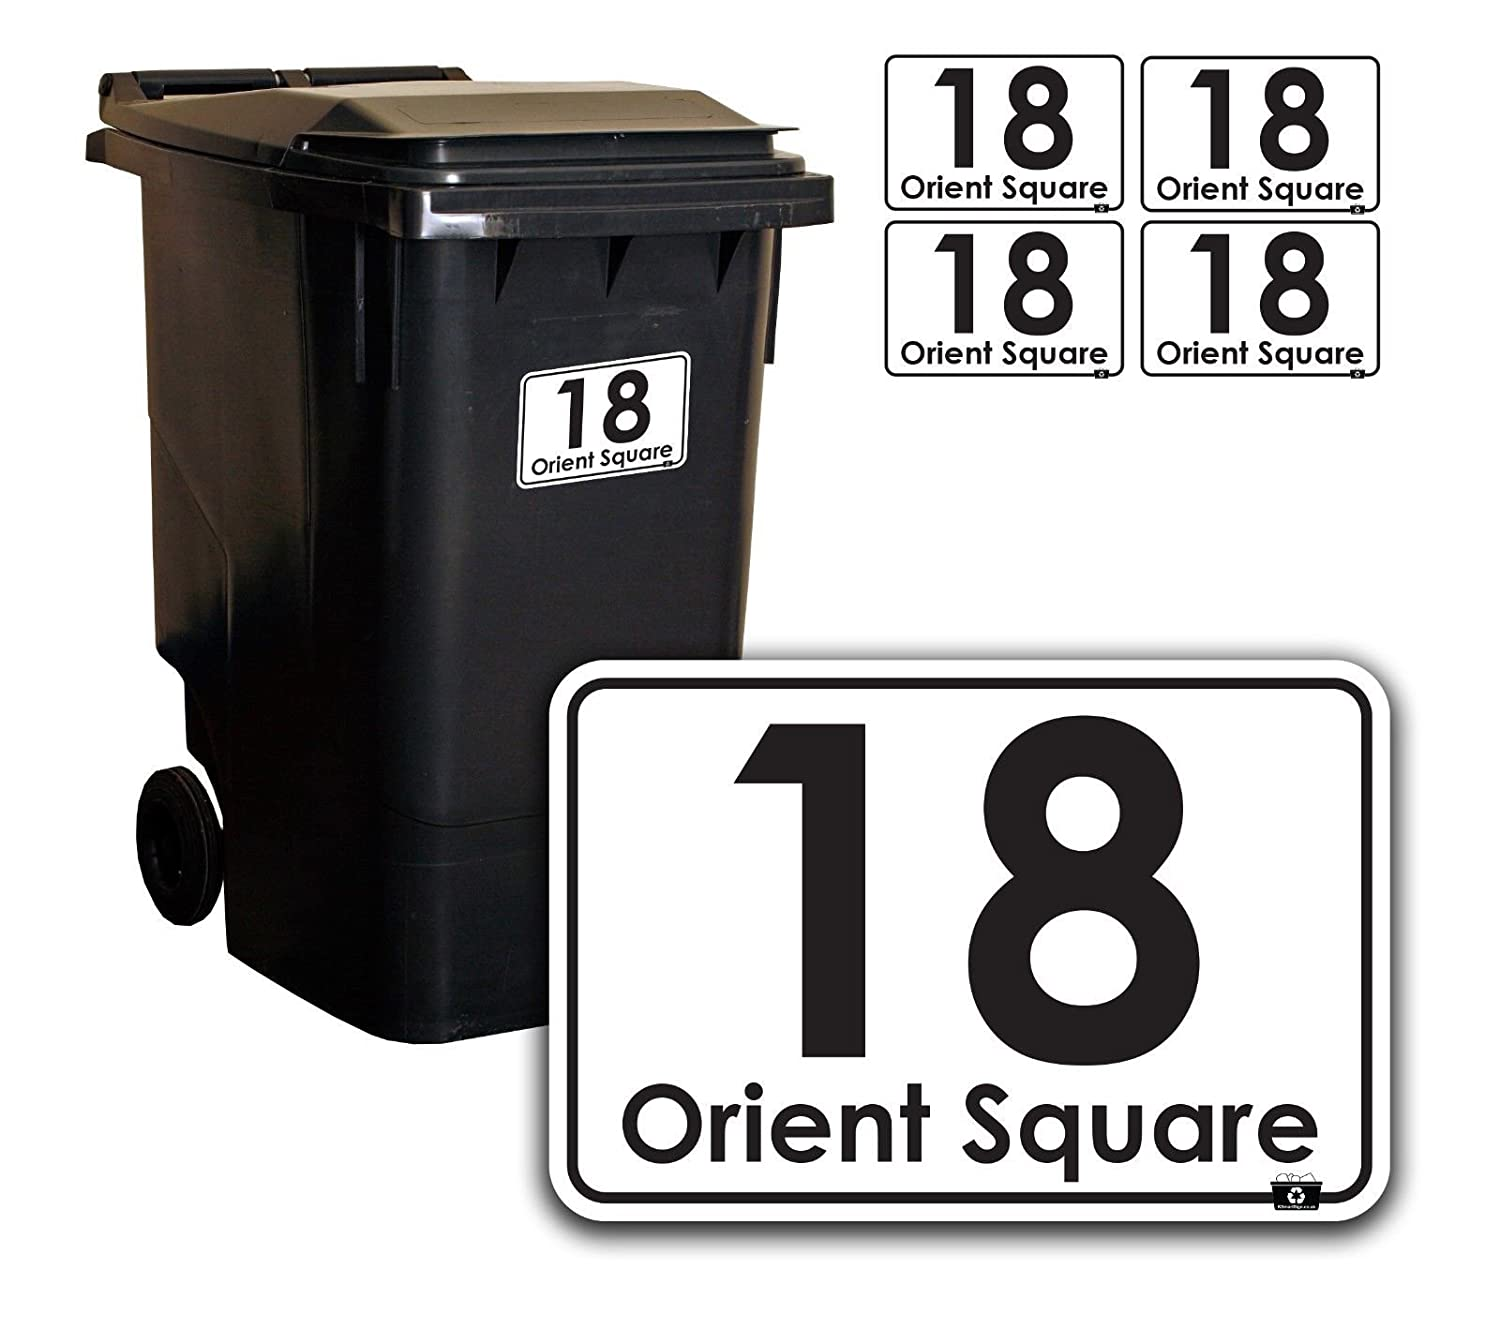 b23b632e753a Personalised Printed Wheelie Bin Number Stickers with number and road Name  - A6 Vinyl Waste Container